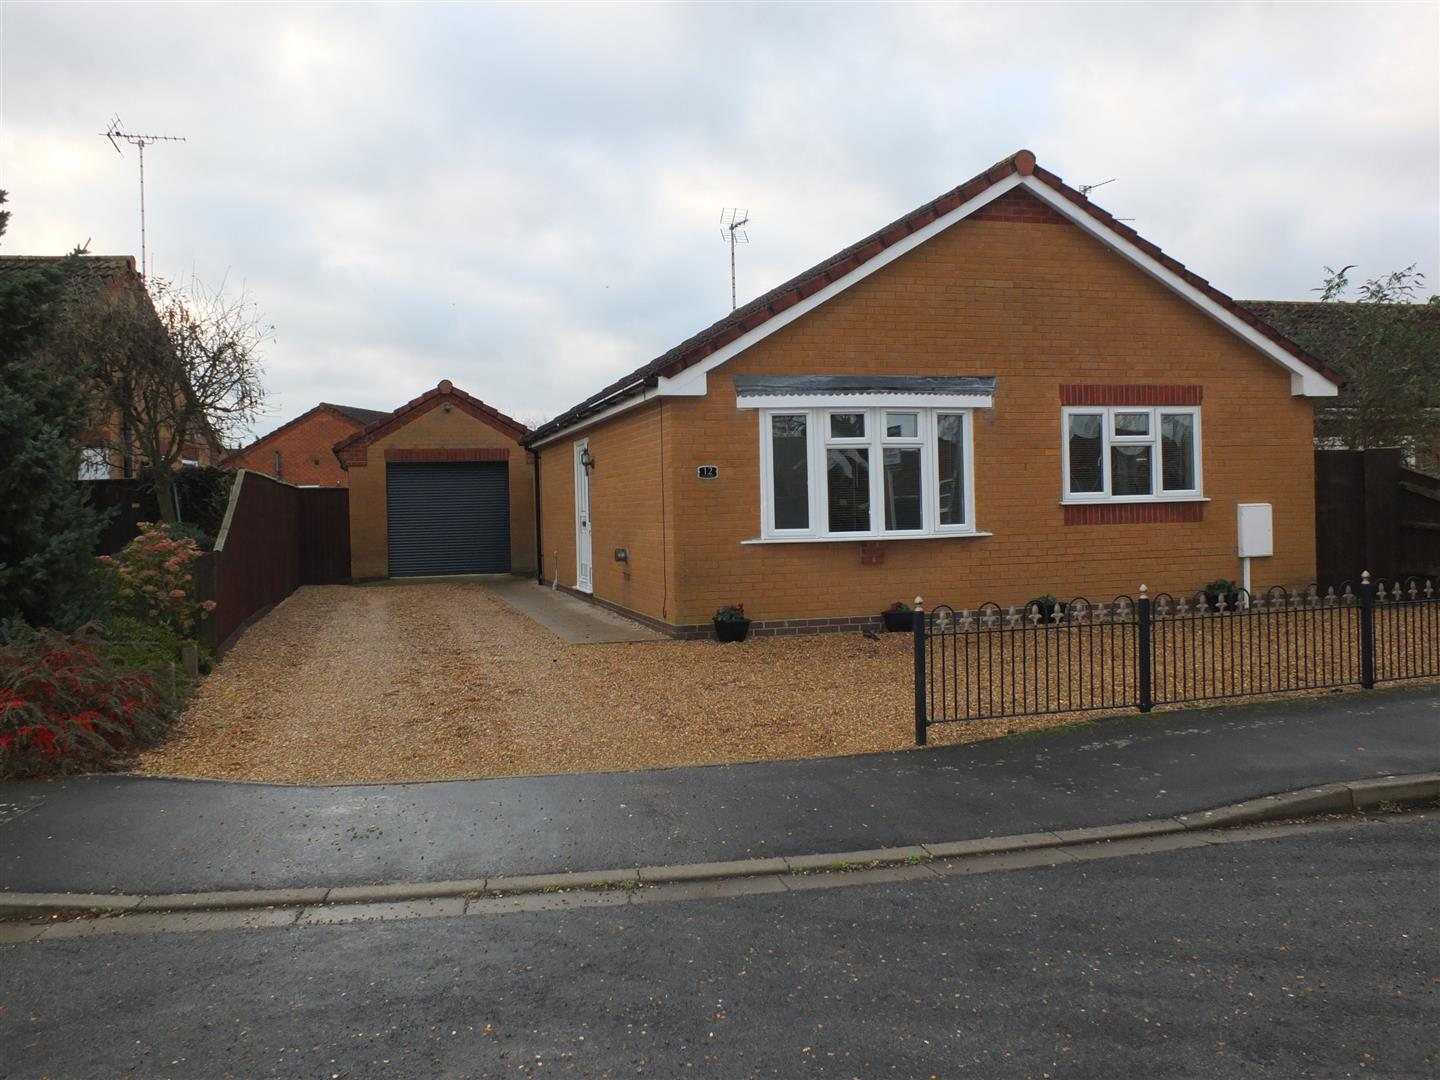 2 bed detached bungalow to rent in Long Sutton Spalding, PE12 9FA 0